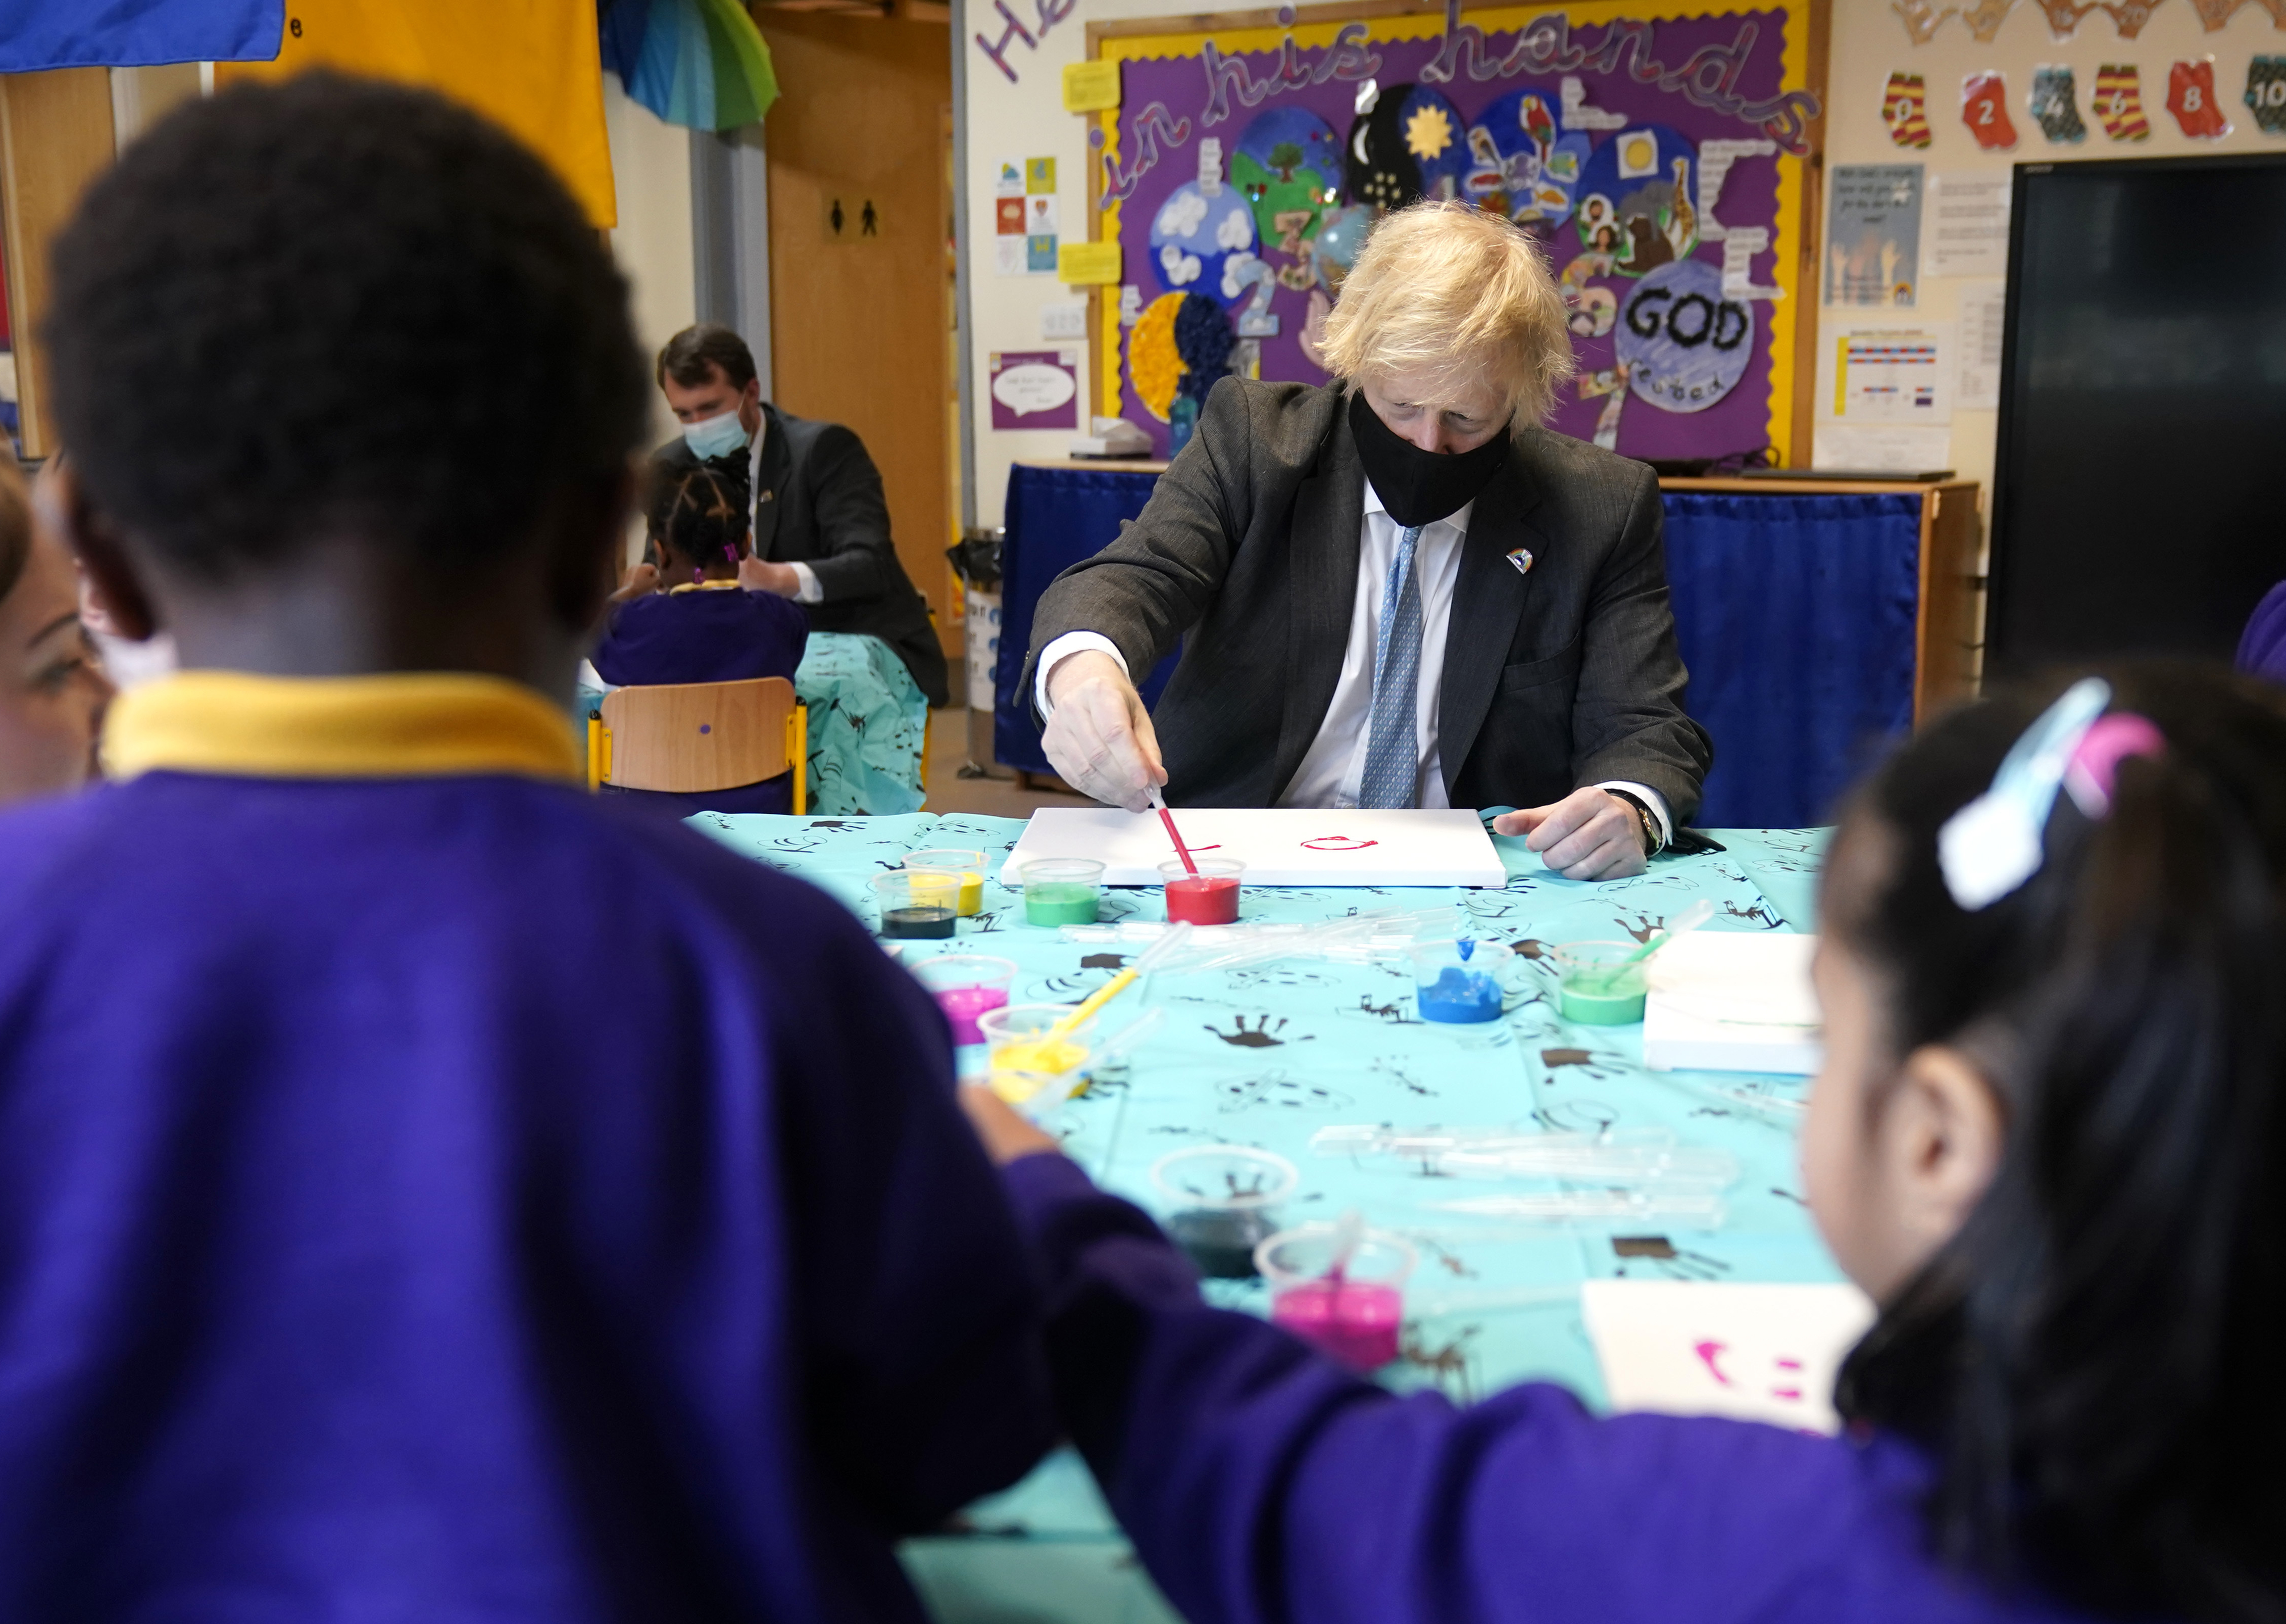 <p>Britain's Prime Minister Boris Johnson joins a reception art class painting lesson during a visit to St Mary's Primary School at Stoke-on-Trent, England, Monday March 1, 2021.  The children of key workers are at school already, but schools will fully reopen starting March 8, after months of closure due to concerns about COVID-19. (Christopher Furlong/pool via AP)</p>